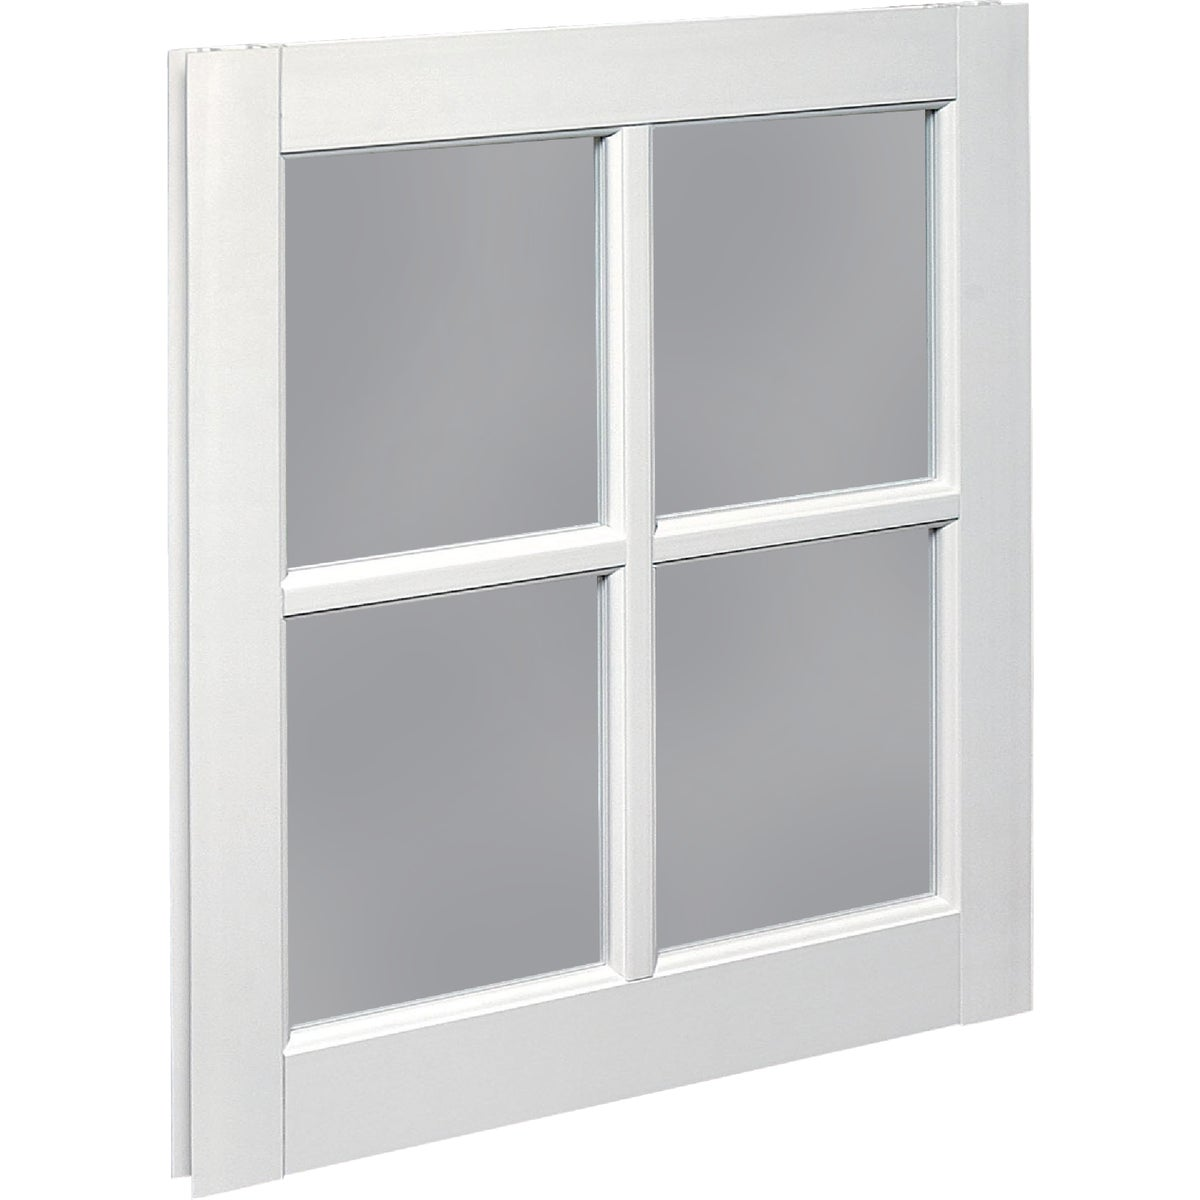 24X29 WHT PVC BARN SASH - BS2429W by Northview Window